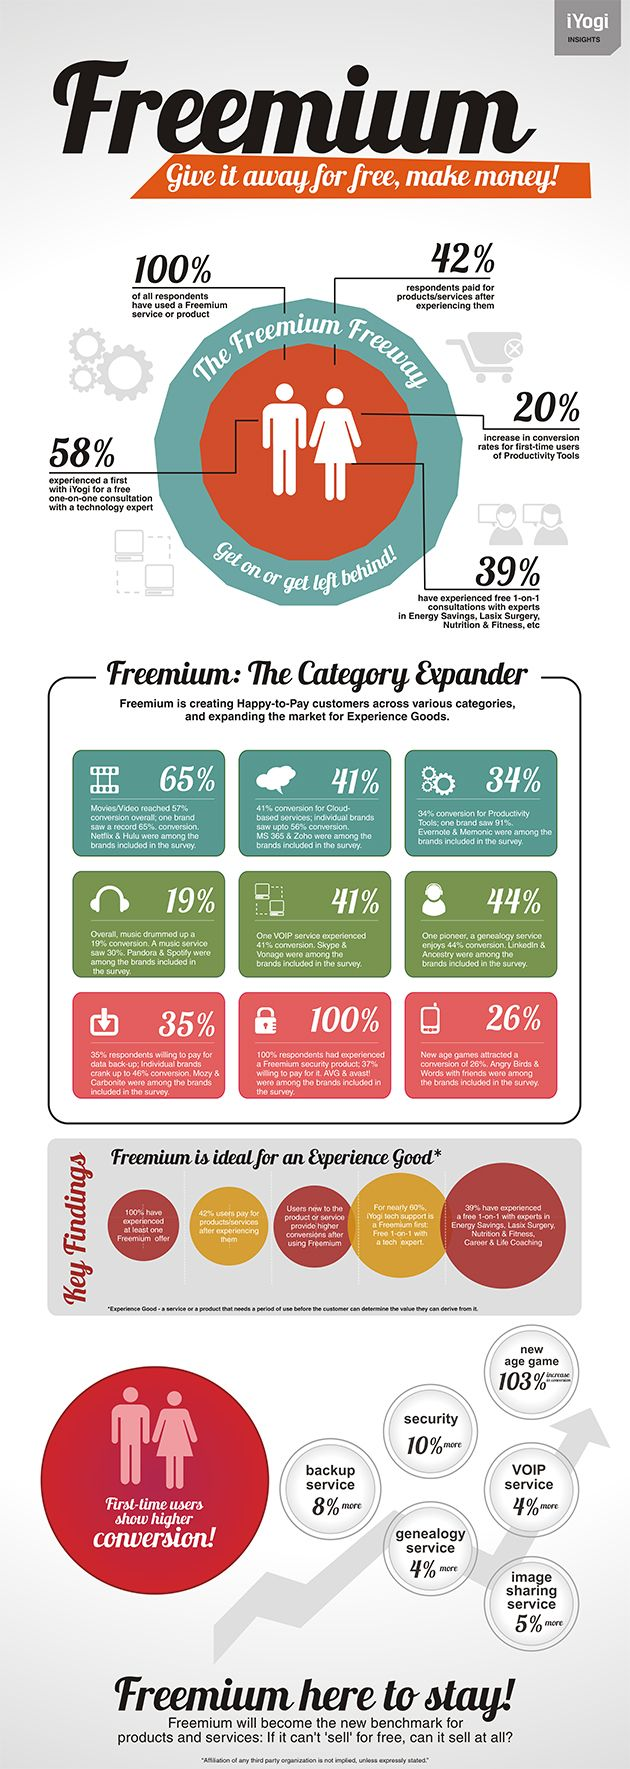 Freemium Business Model: Information for Business Owners